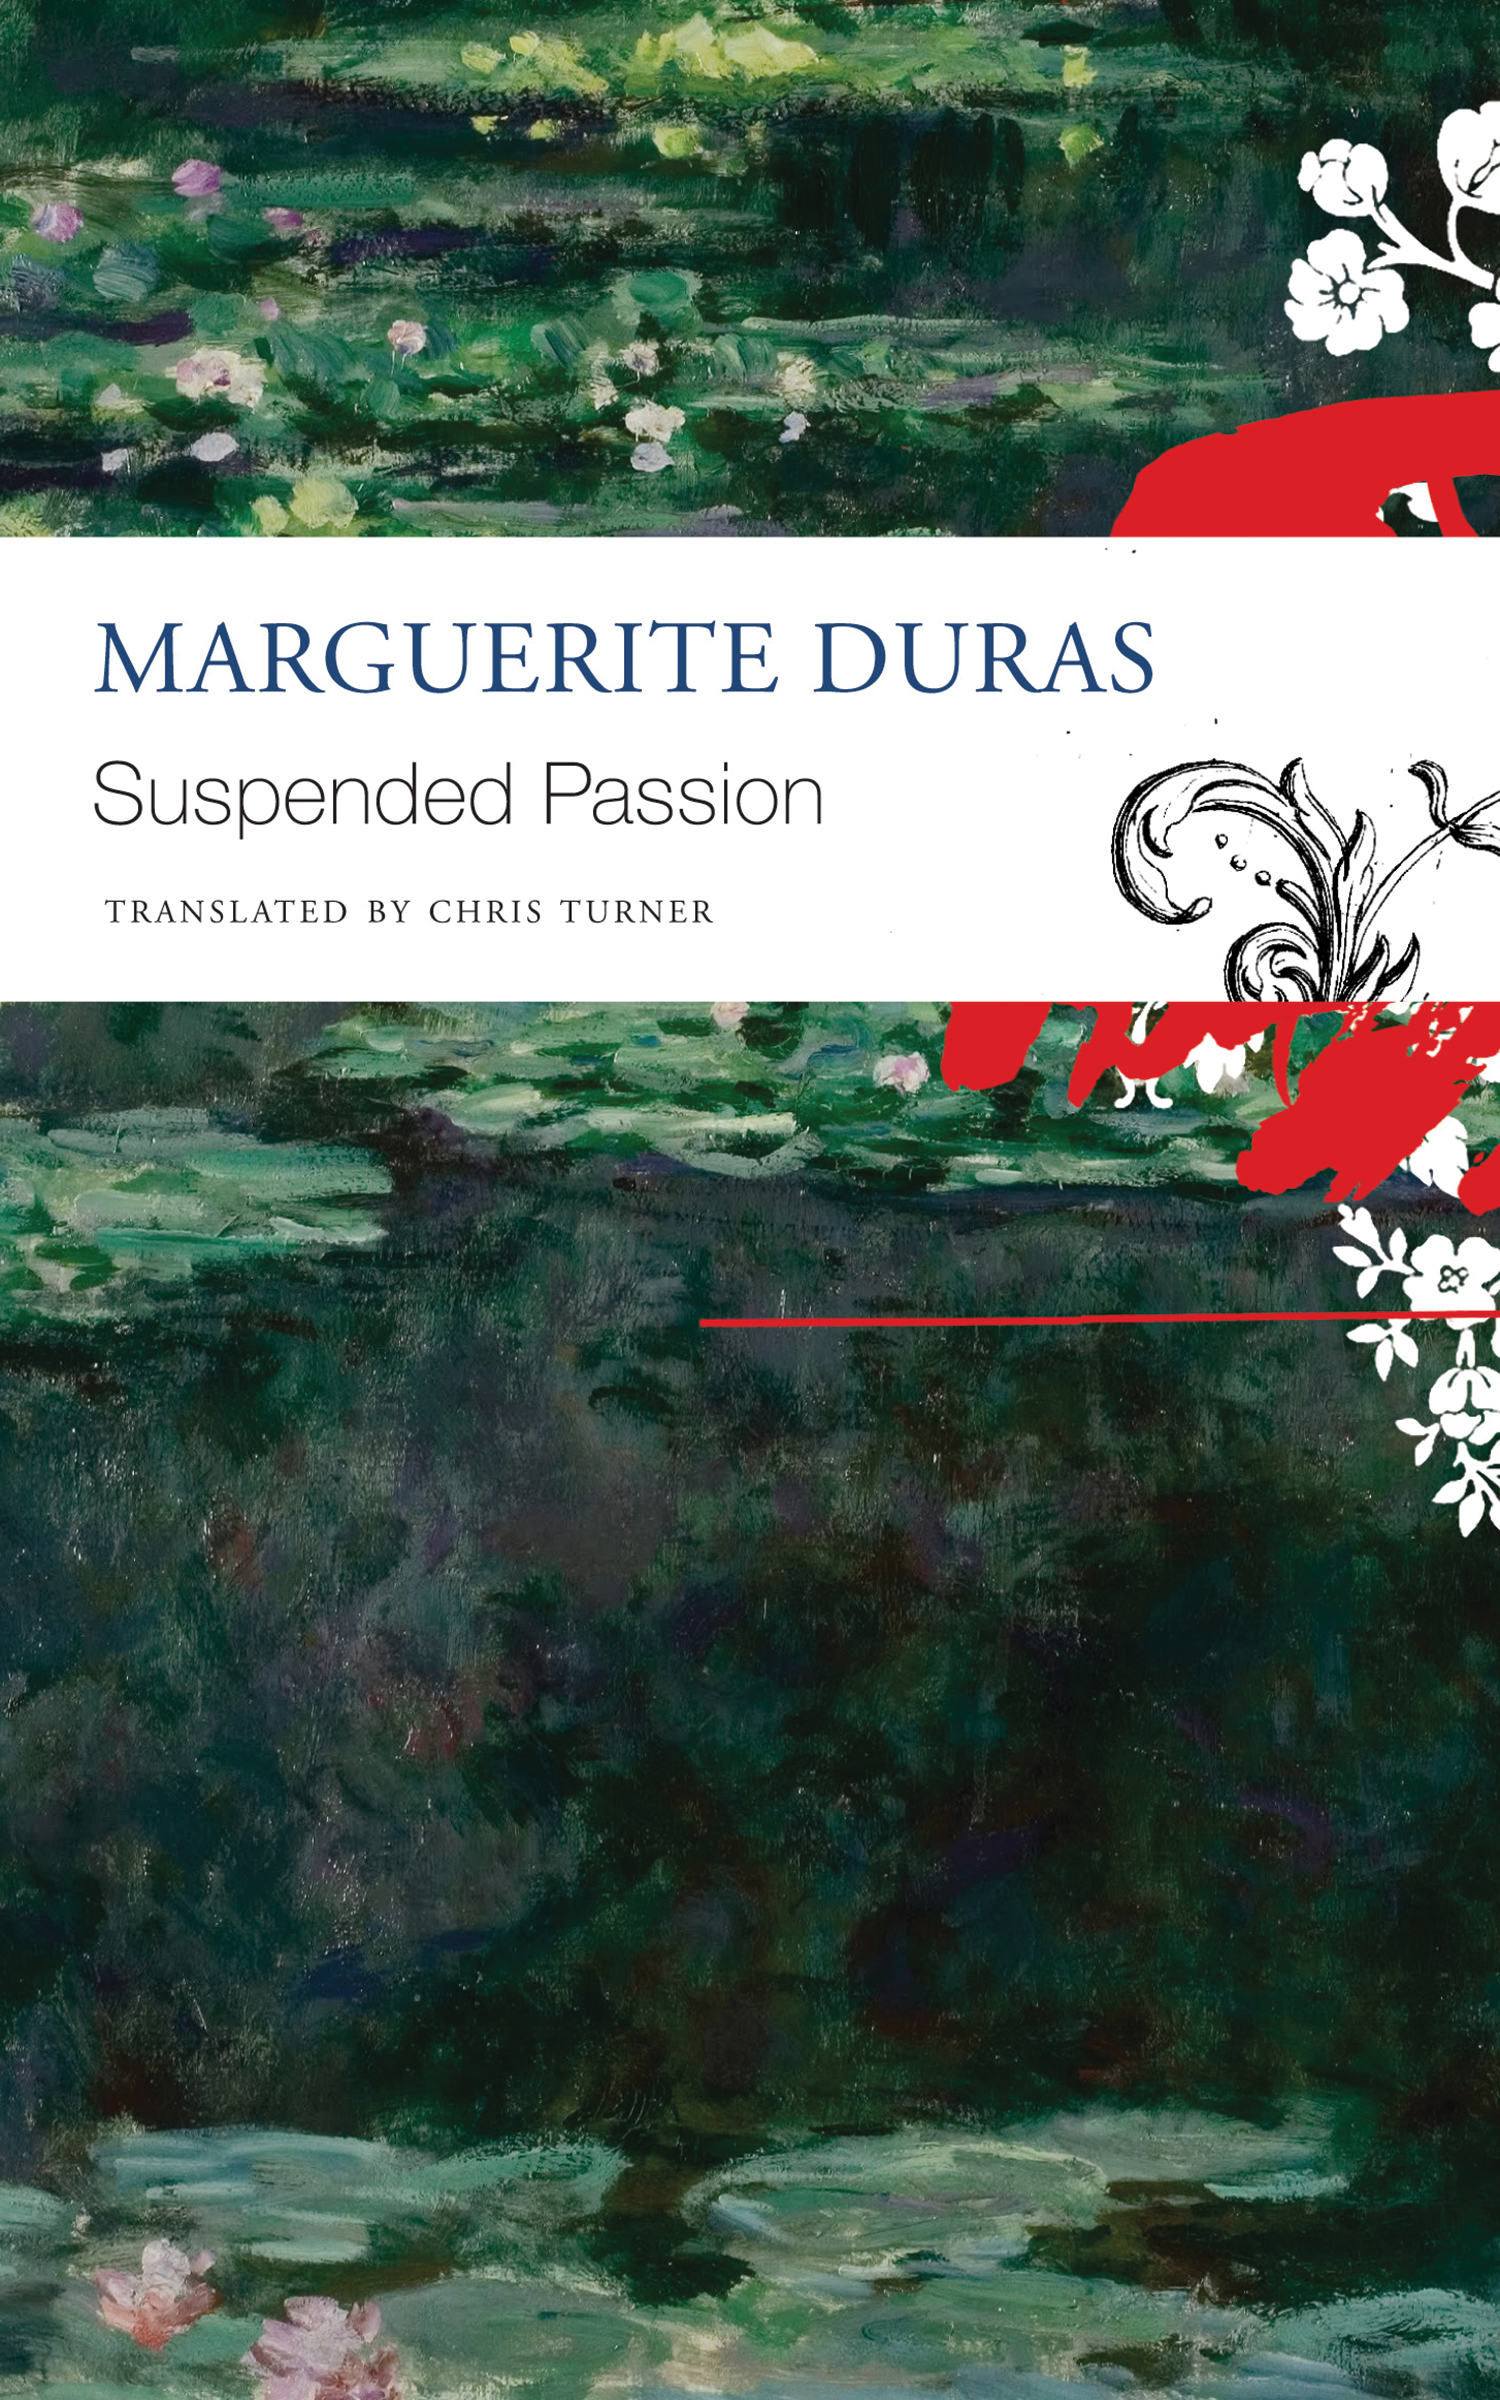 Suspended Passion : Interviews by Marguerite Duras | Seagull Books